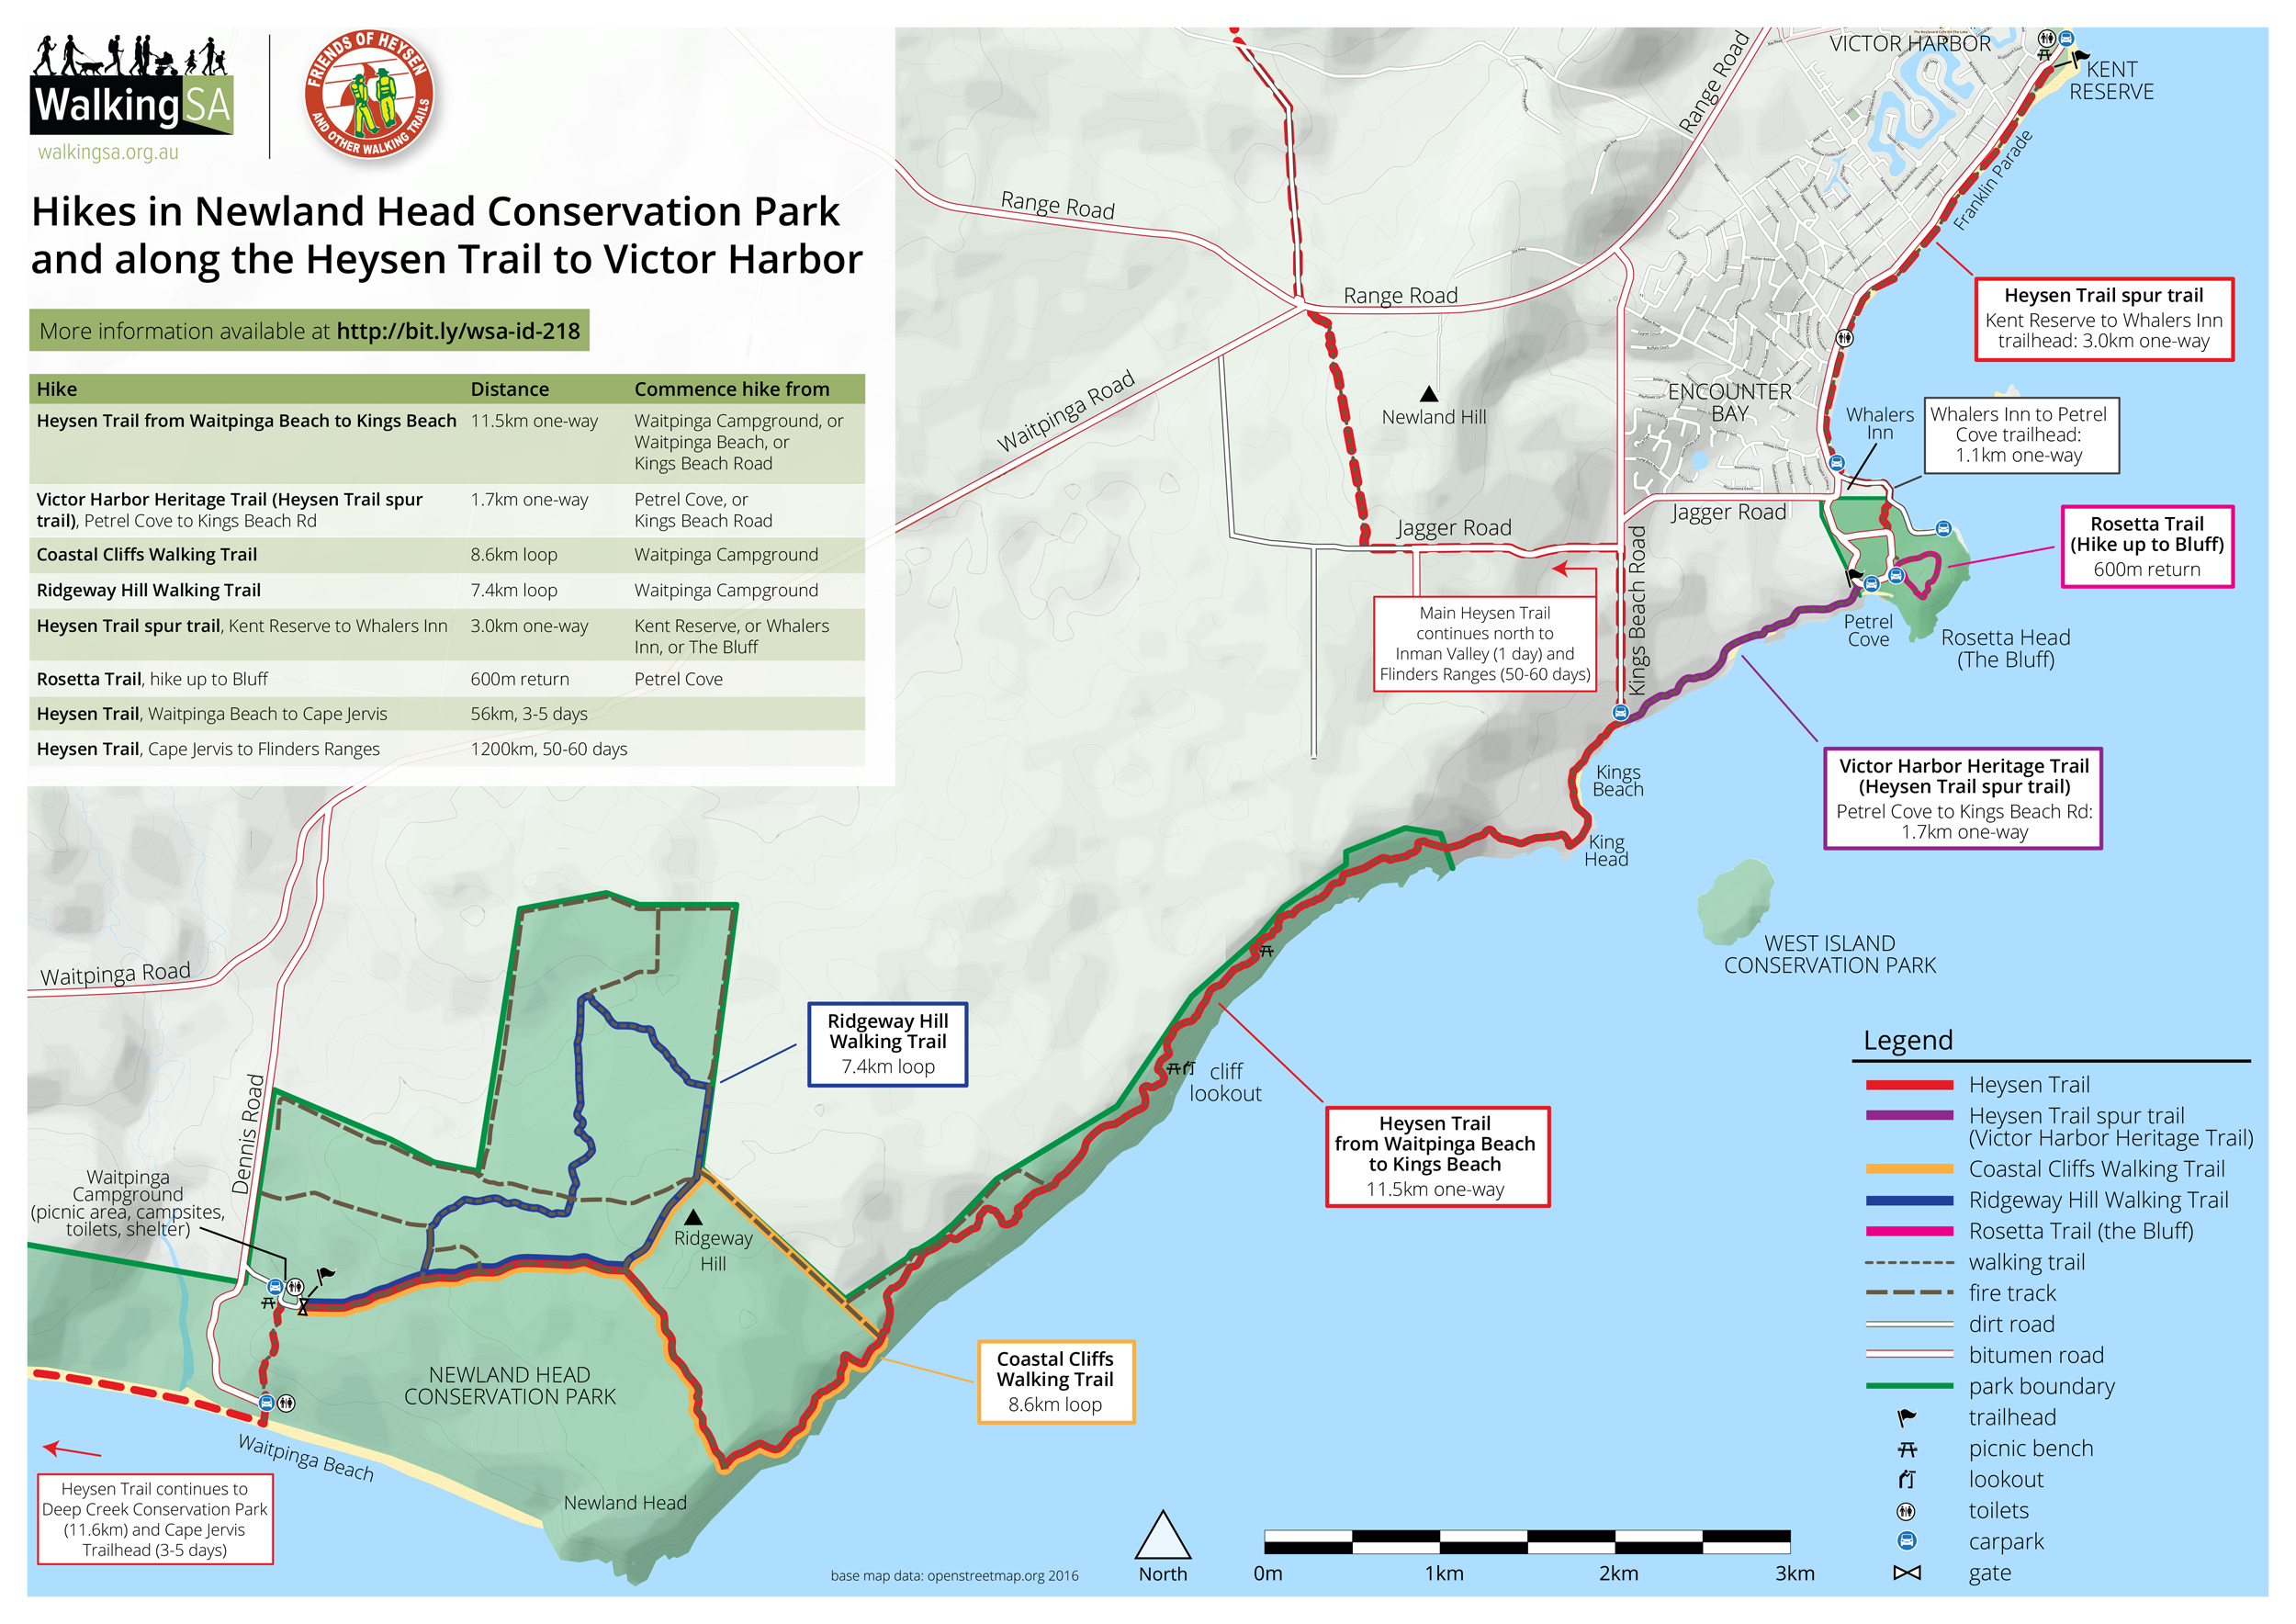 Map of hikes & walking trails in Newland Head Conservation Park and along the Heysen Trail to Victor Harbor